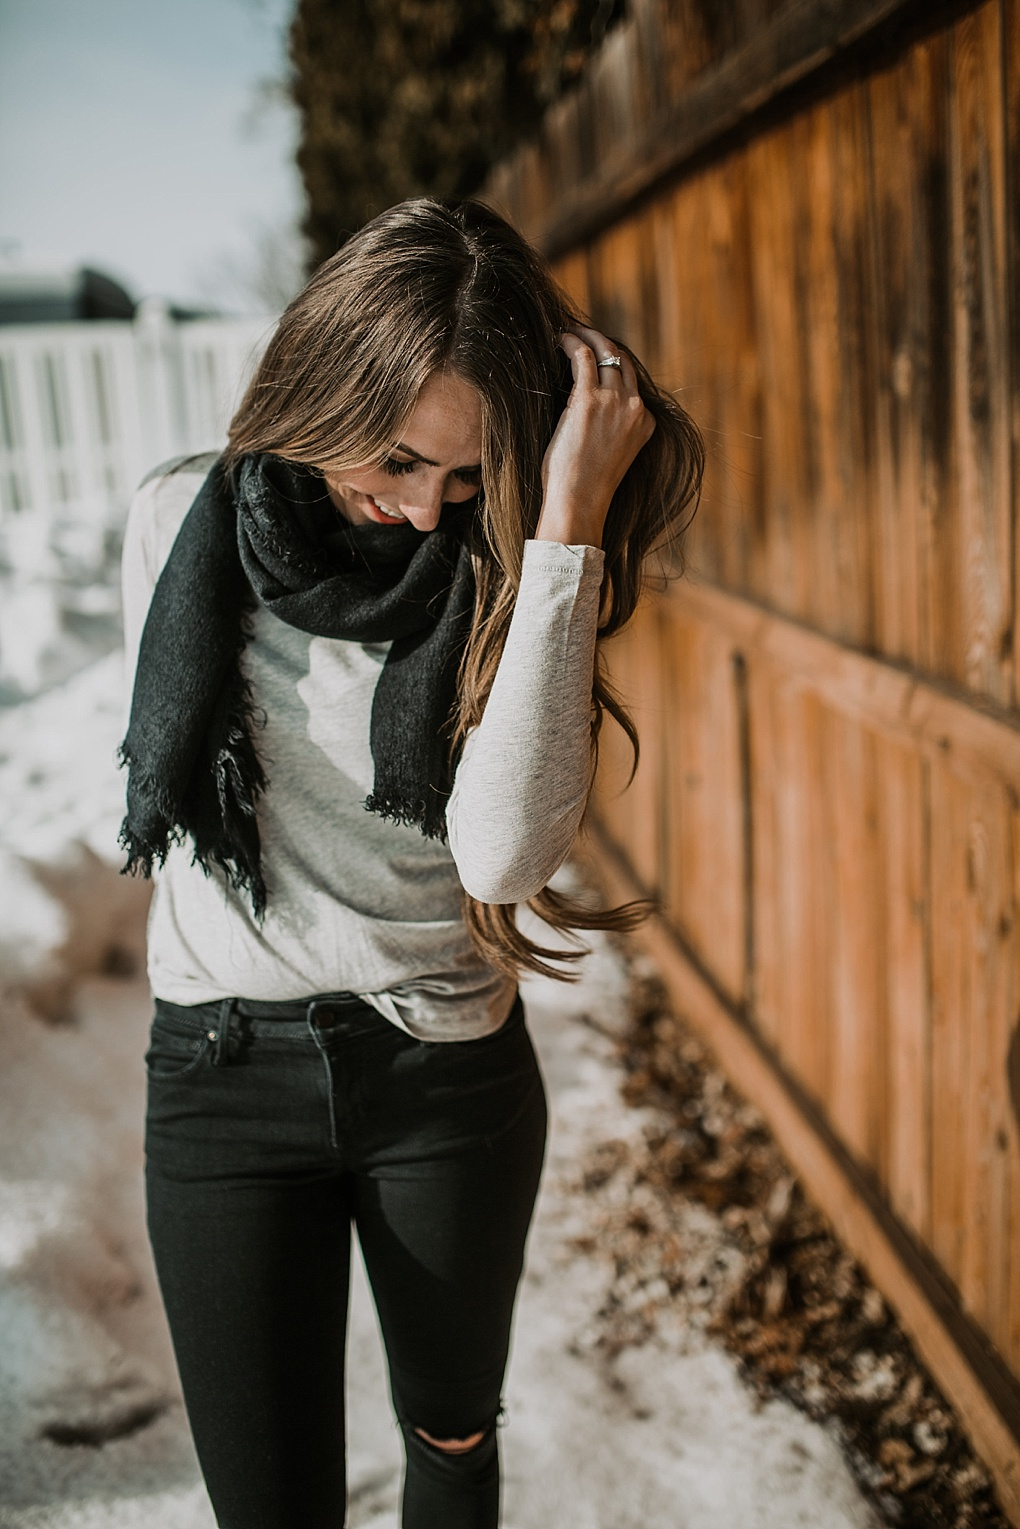 3 ways to tie blanket scarves girl standing in snow in basic tee black jeans and wearing a black blanket scarf